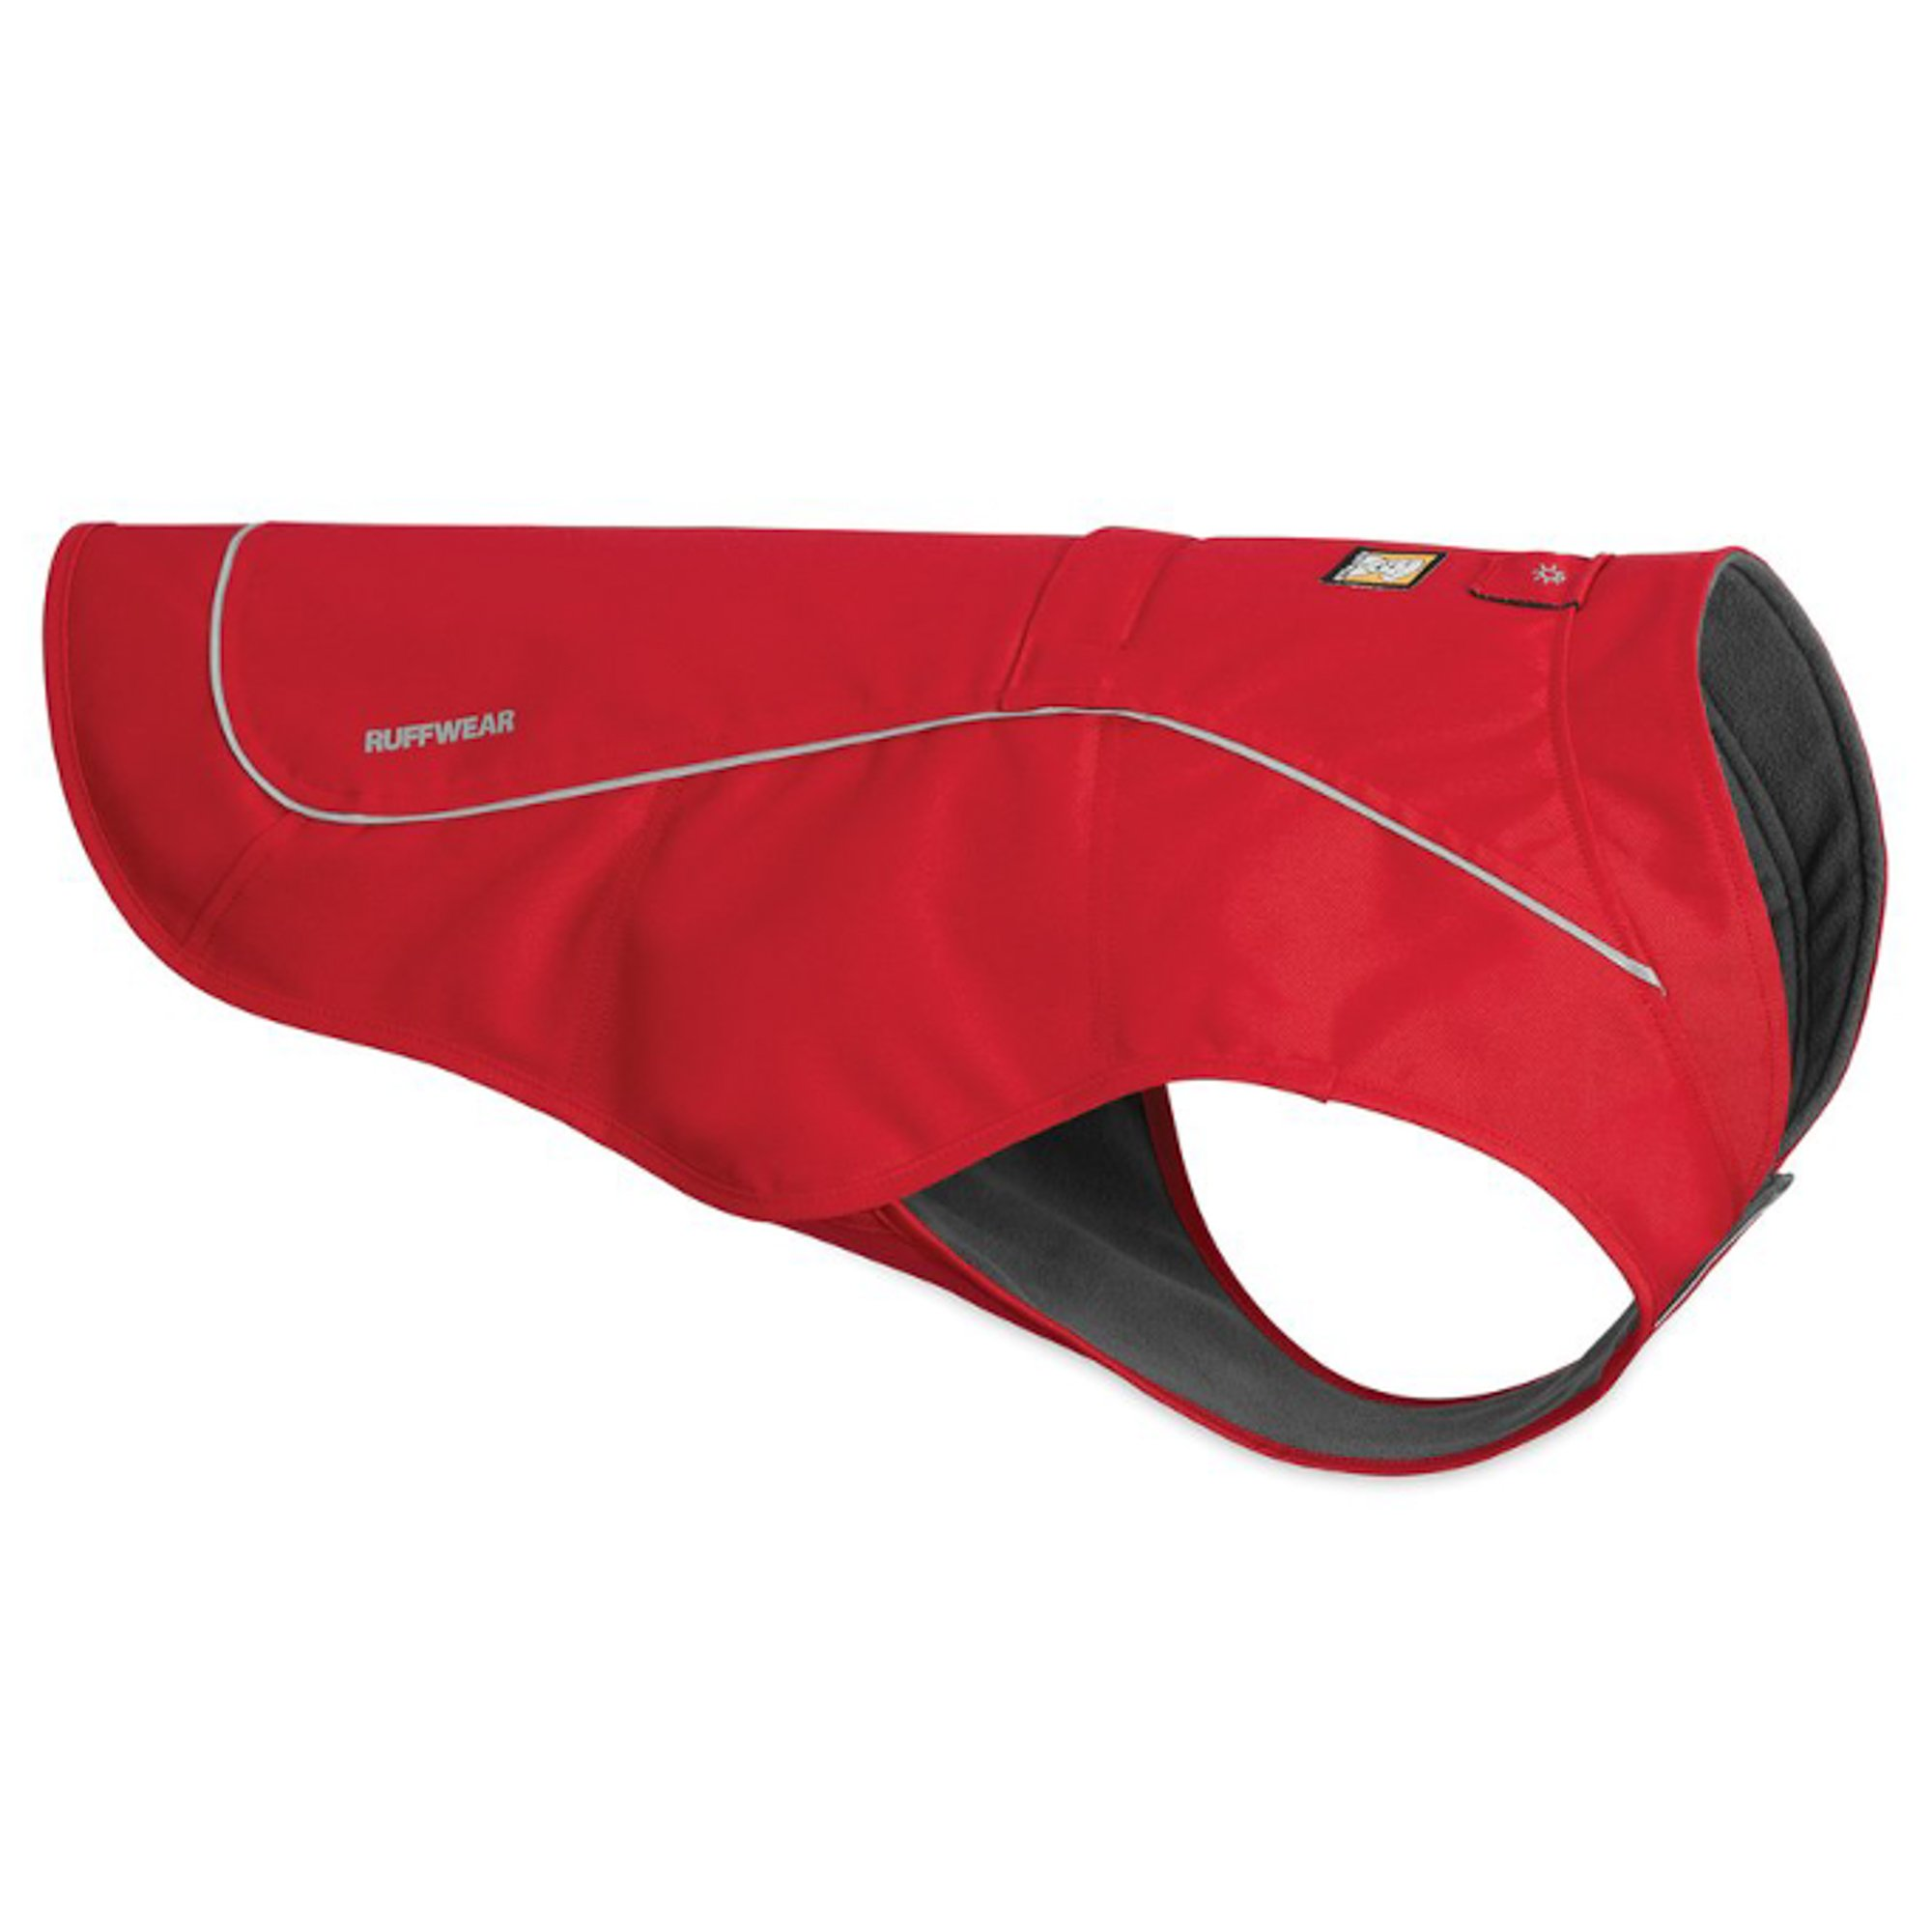 RUFFWEAR - Overcoat Insulated Dog Jacket for Cold Weather, Red Currant, Medium